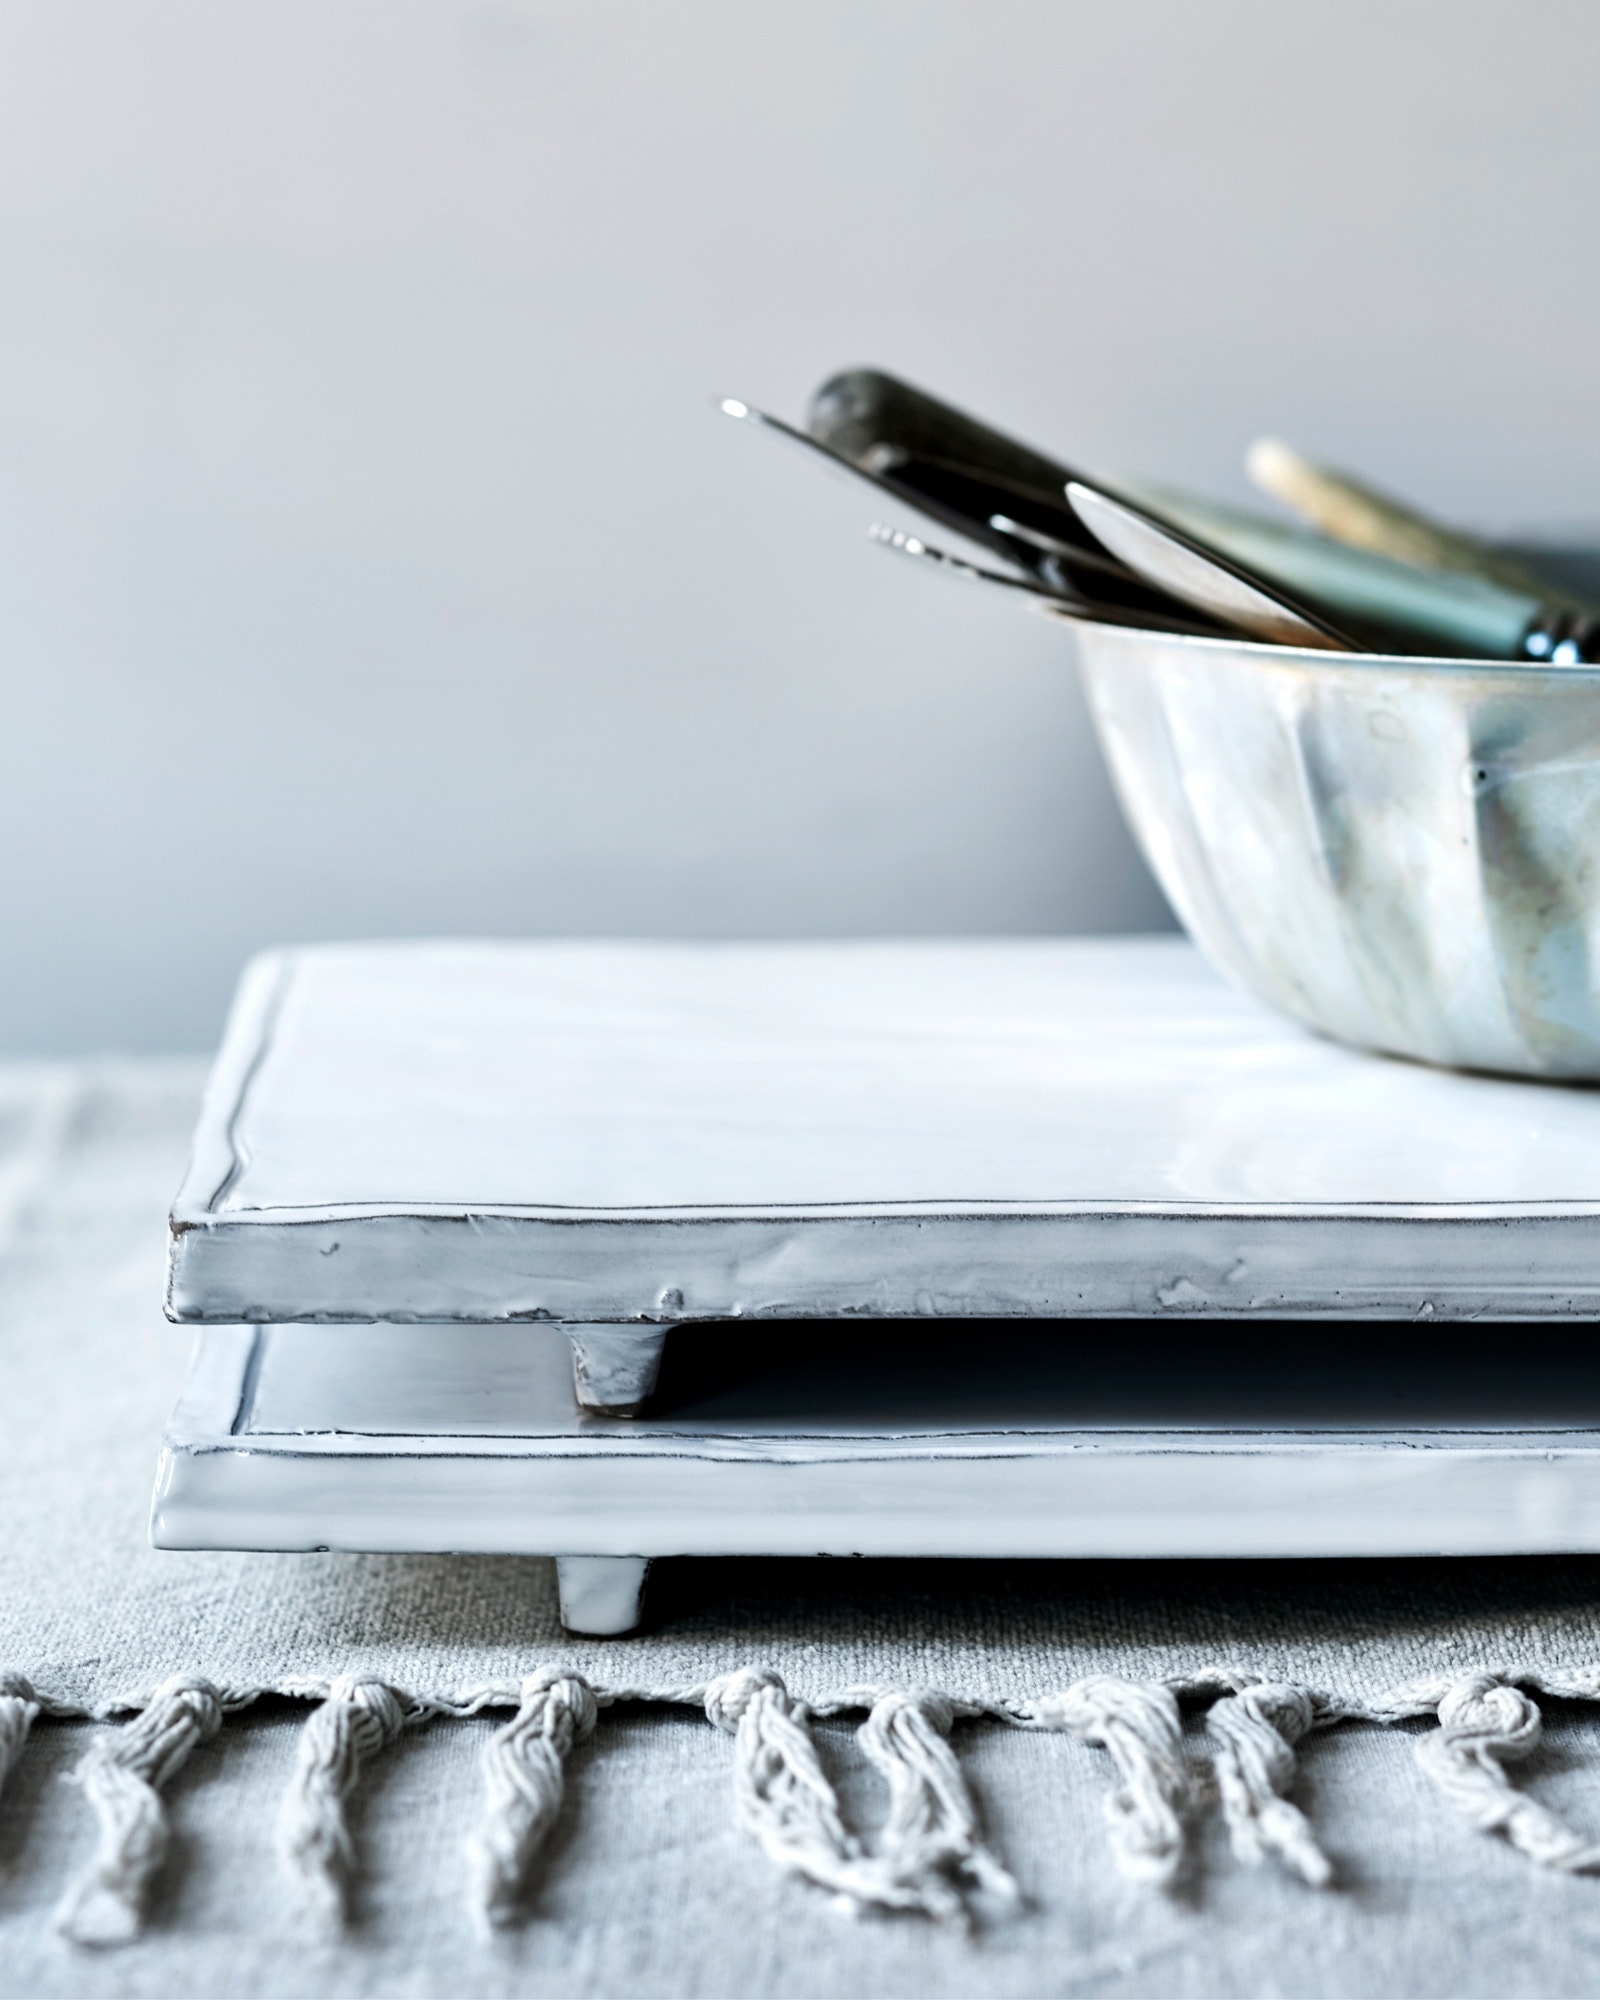 Still life photography, Table